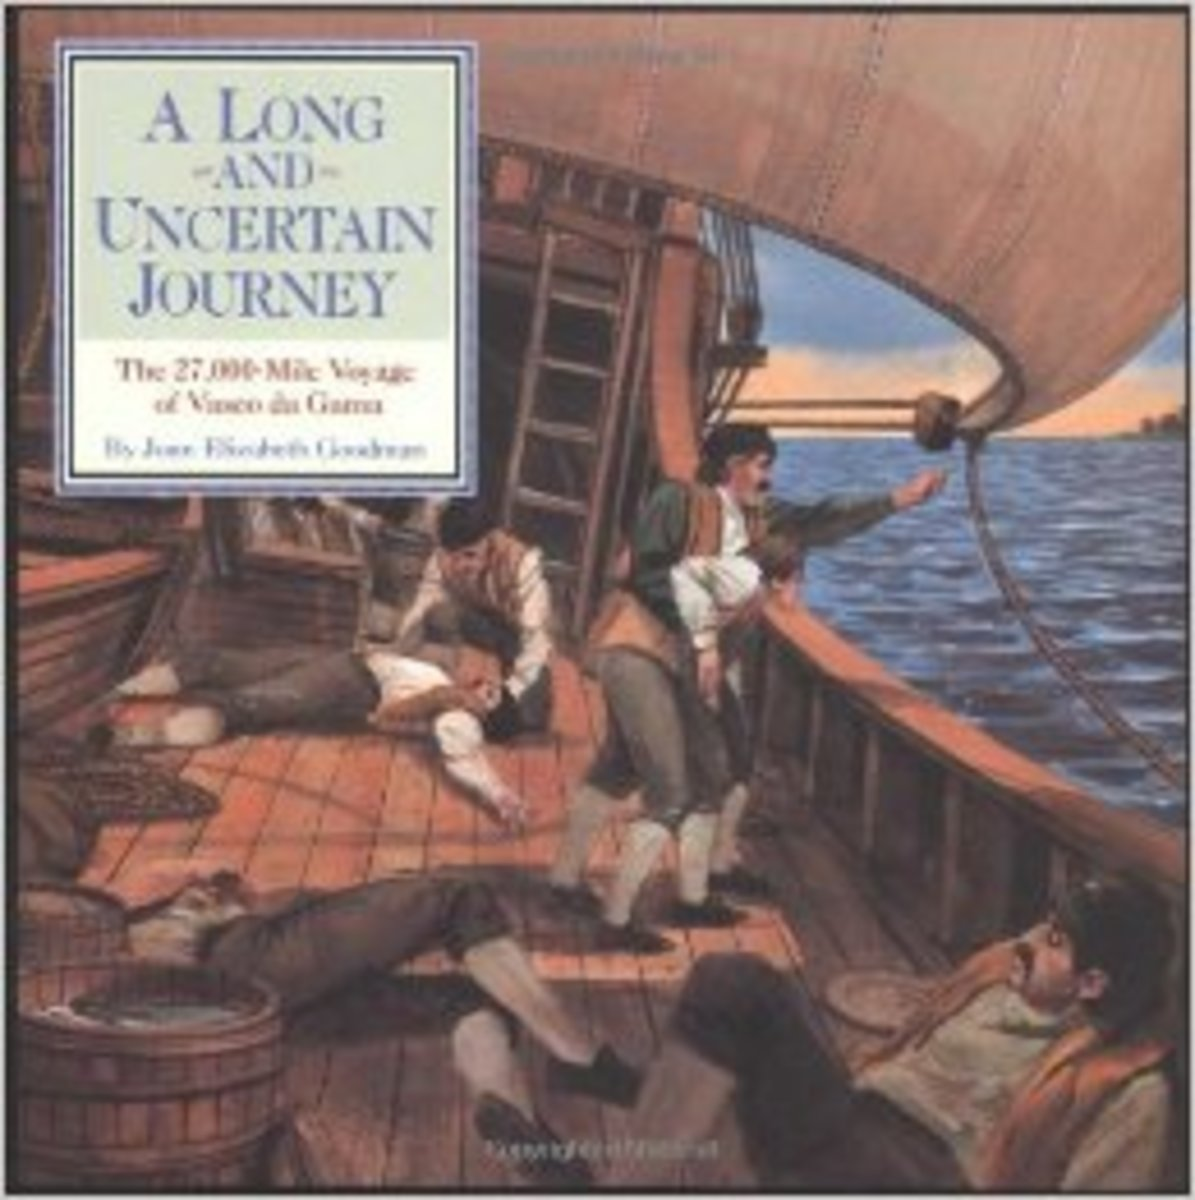 A Long and Uncertain Journey: The 27,000 Mile Voyage of Vasco Da Gama (Great Explorers) by Joan Goodman - Images are from amazon.com.